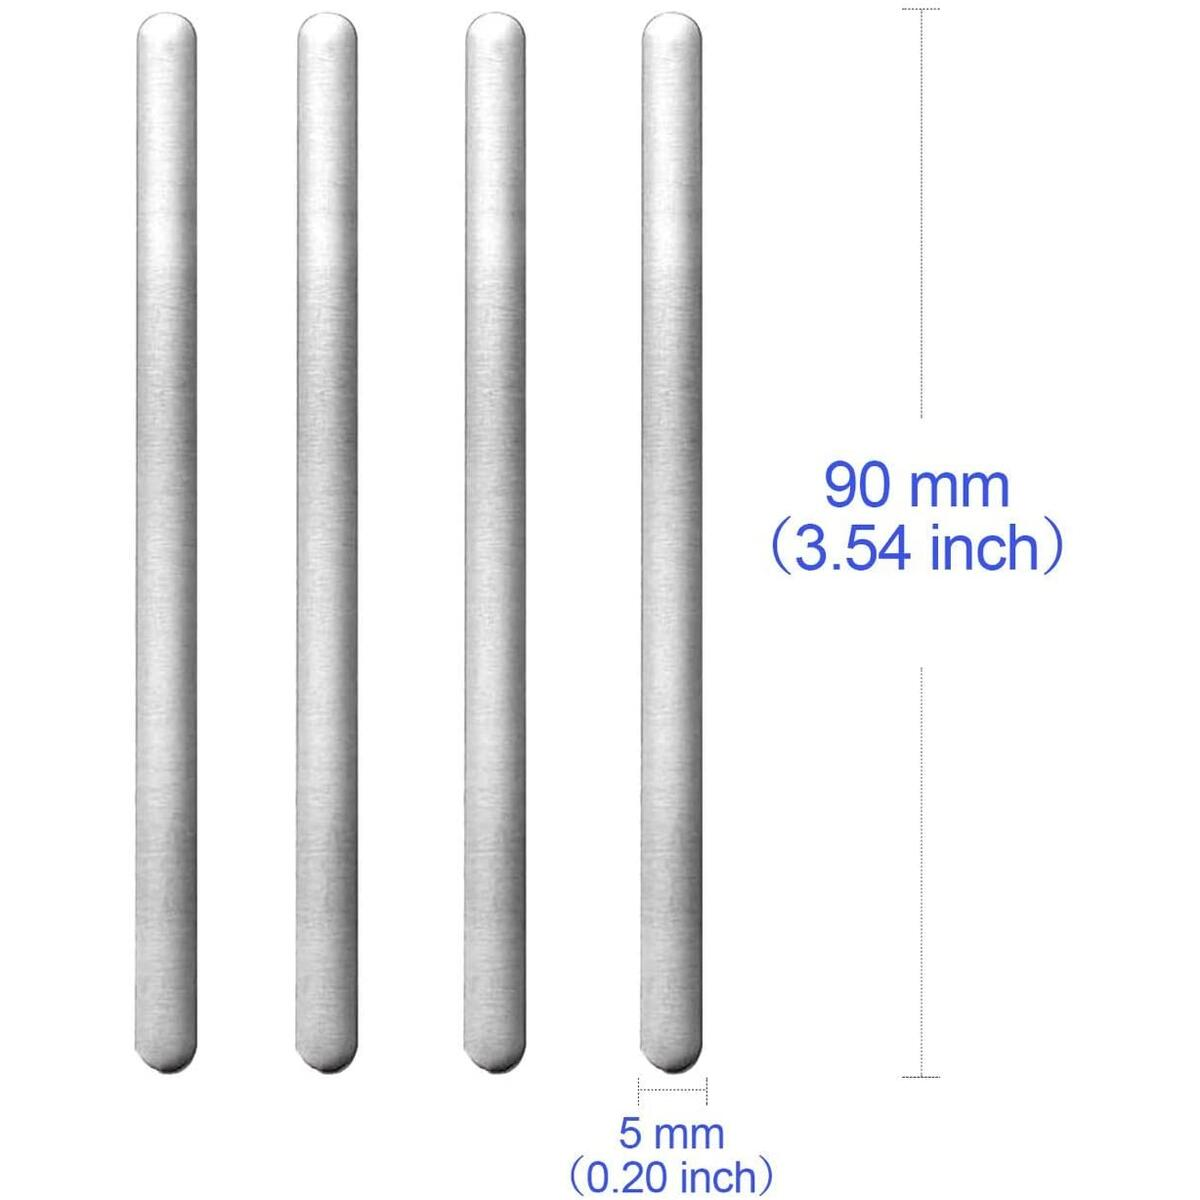 120 90mm Aluminum Nose Bridge Flat Wire Strip Bridge for DIY Face Production Accessories Crafts